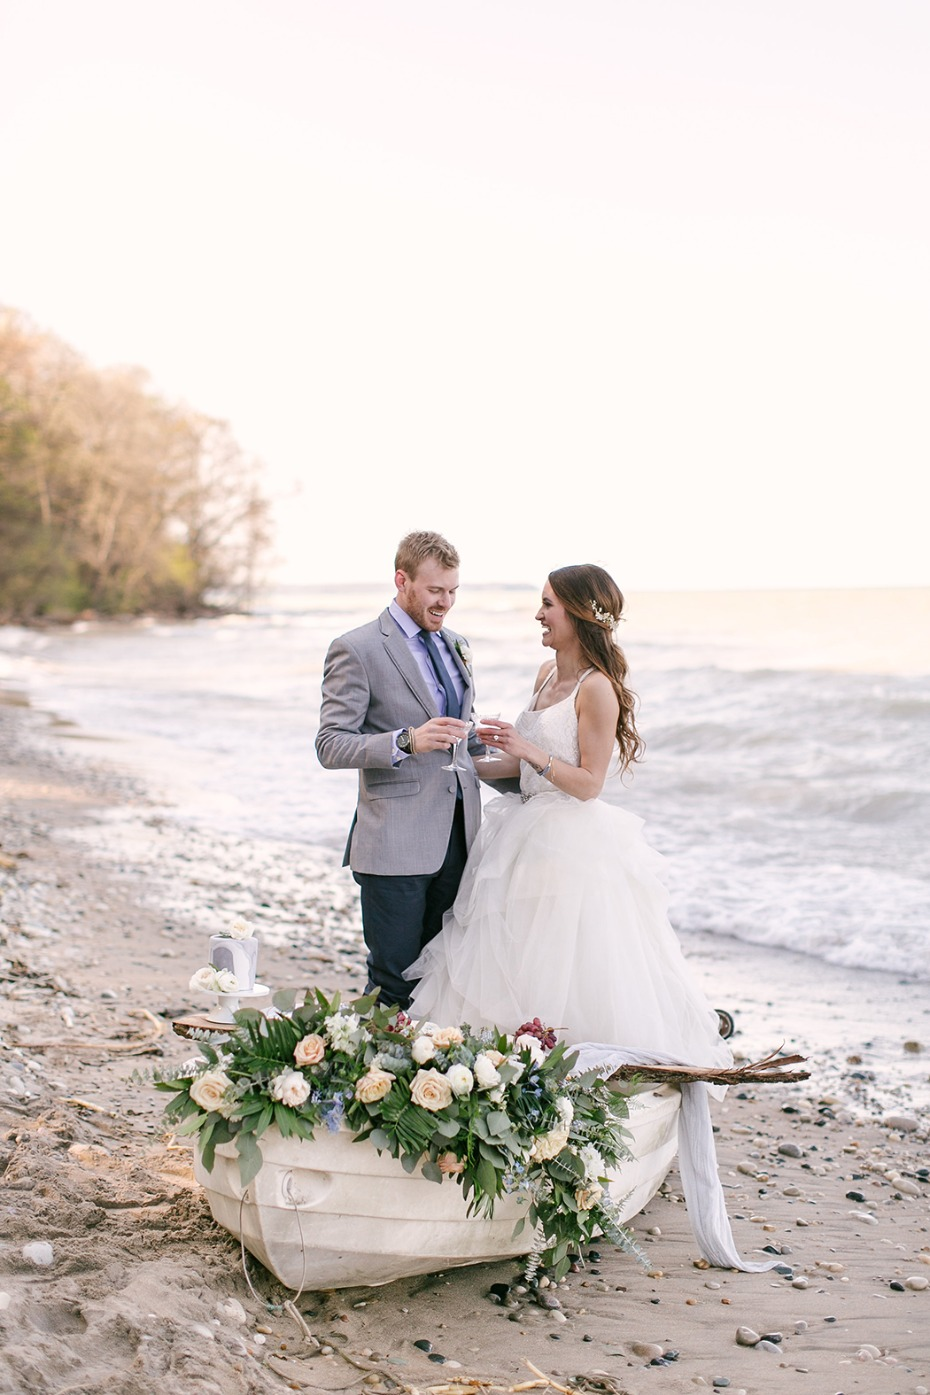 sweet bride and groom at the beach